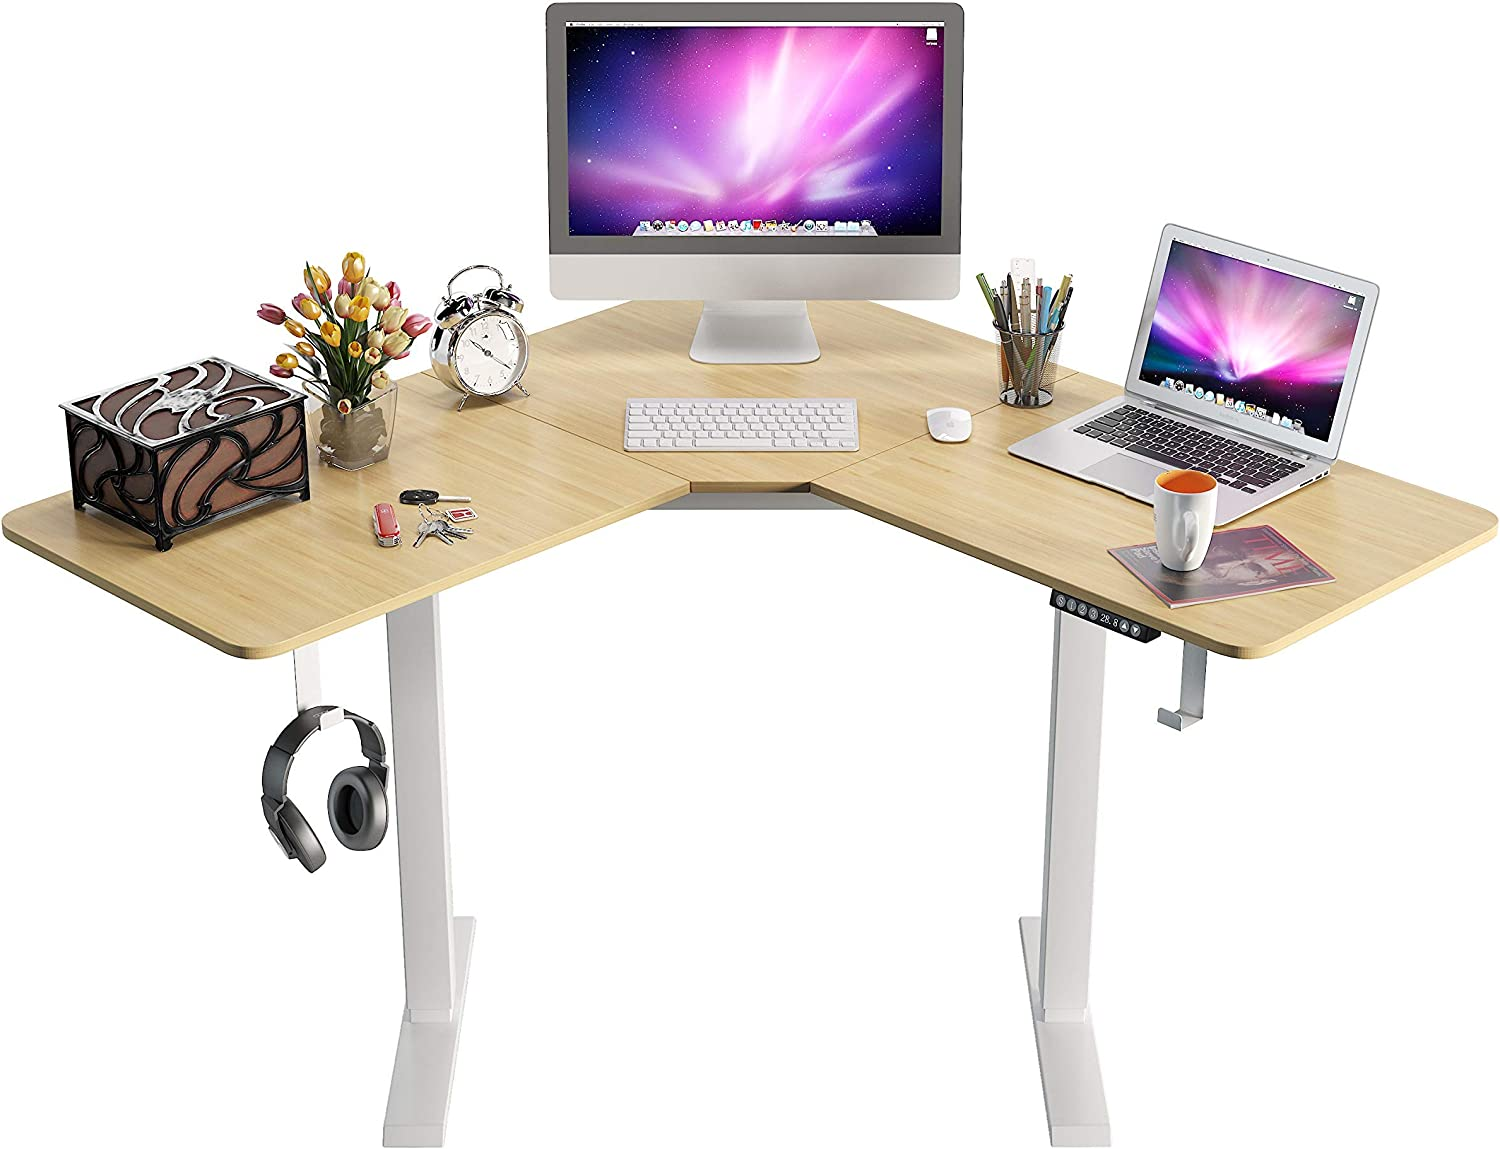 L-Shaped Standing Desk,Height Adjustable Electric Corner Desk,48 Inches Home Office Table with Splice Board,Dual Motor Home Office Desks White Frame (Natural)